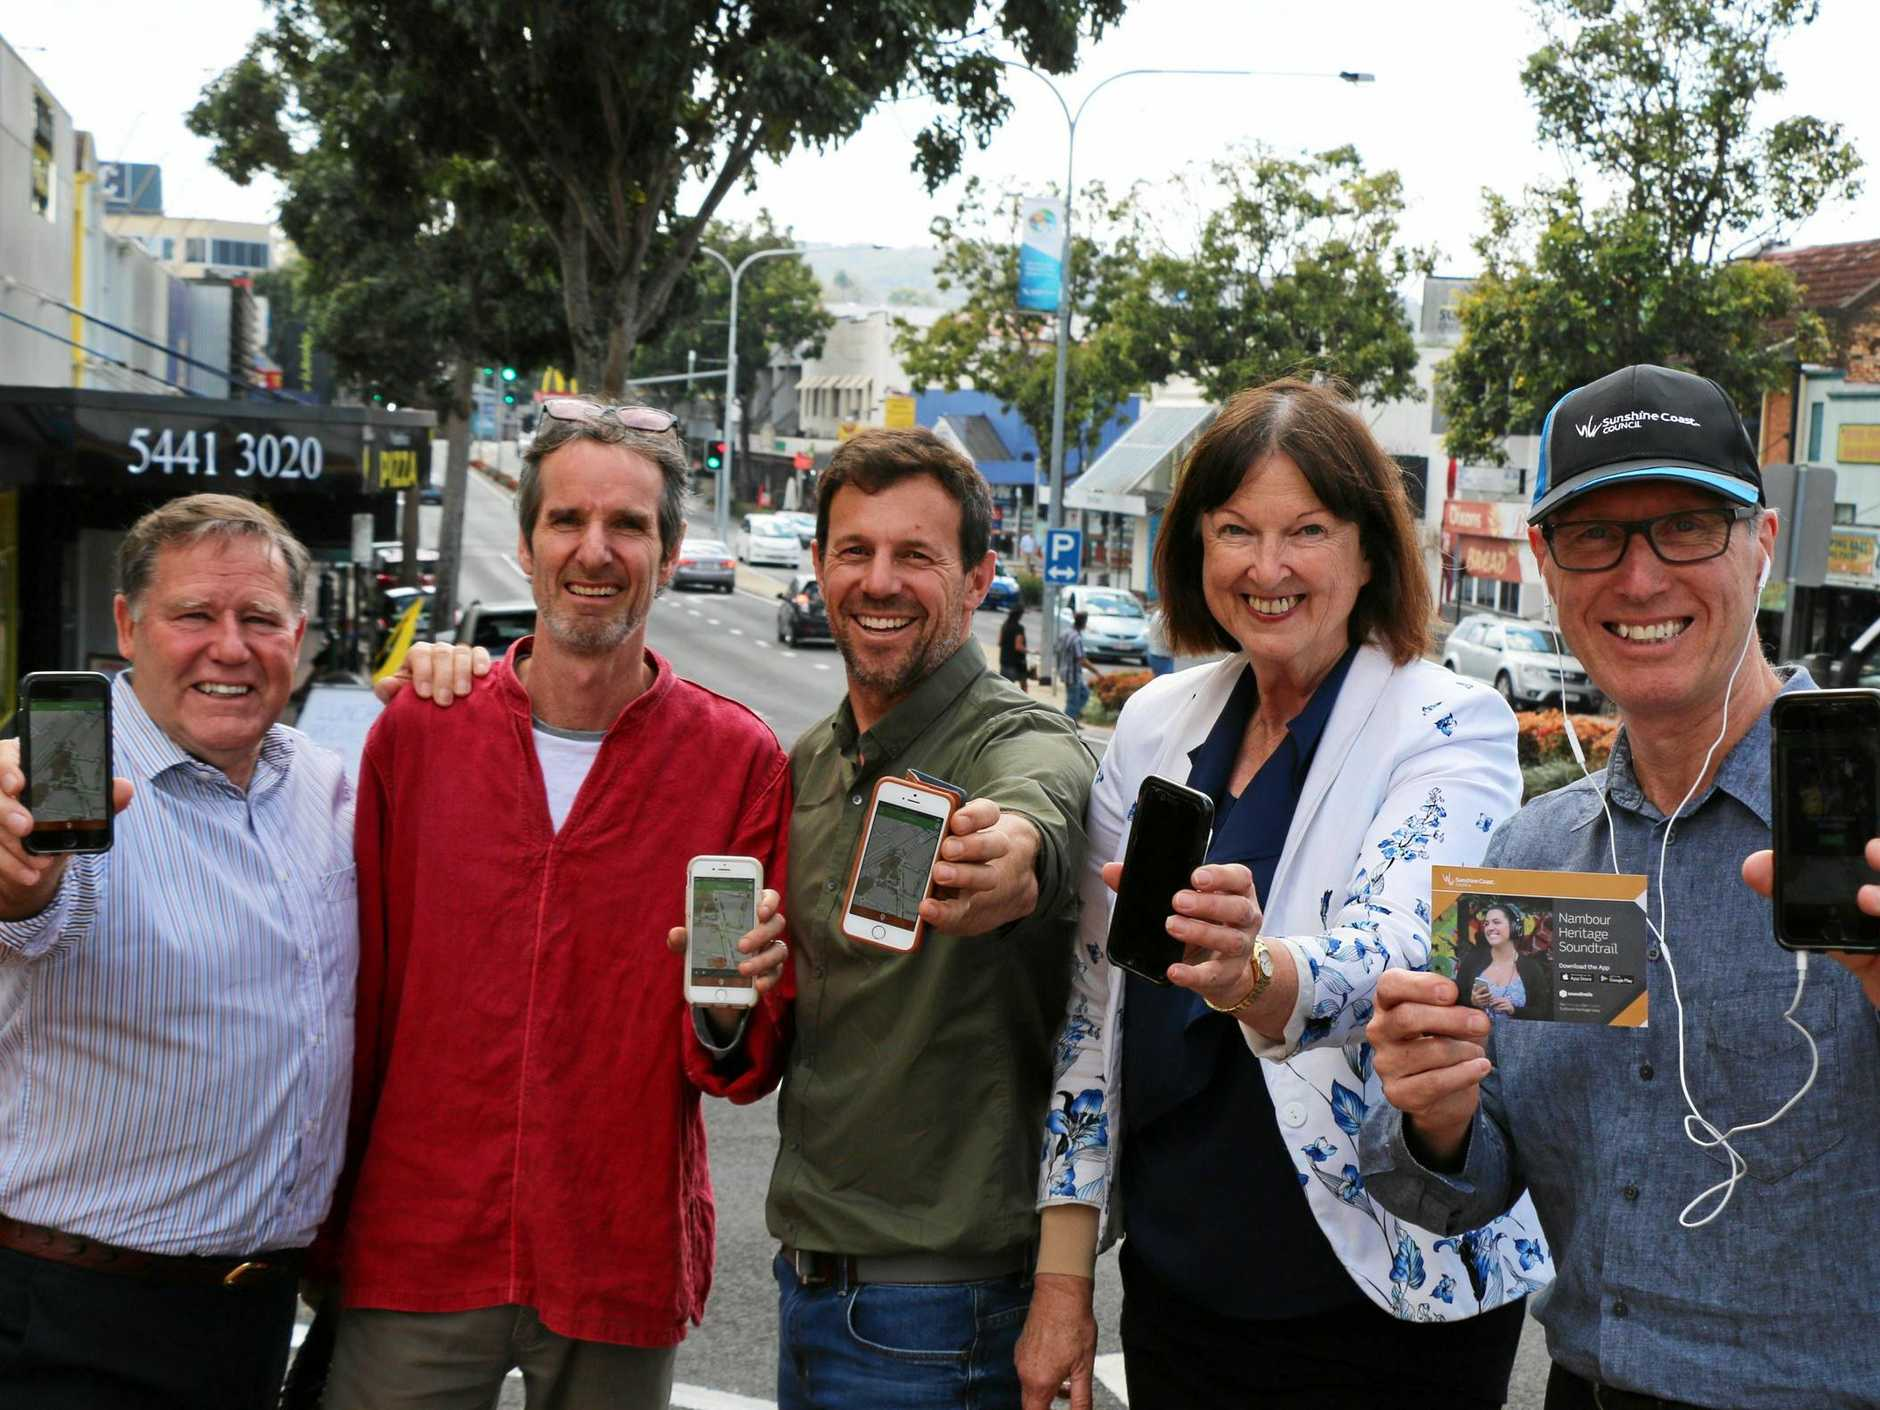 NAMBOUR SOUNDTRAIL: Cr Greg Rogerson, producer Hamish Sewell, narrator Jon Coghill, Cr Jenny McKay and Cr Rick Baberowski test out the Nambour Heritage Soundtrail in Currie St.